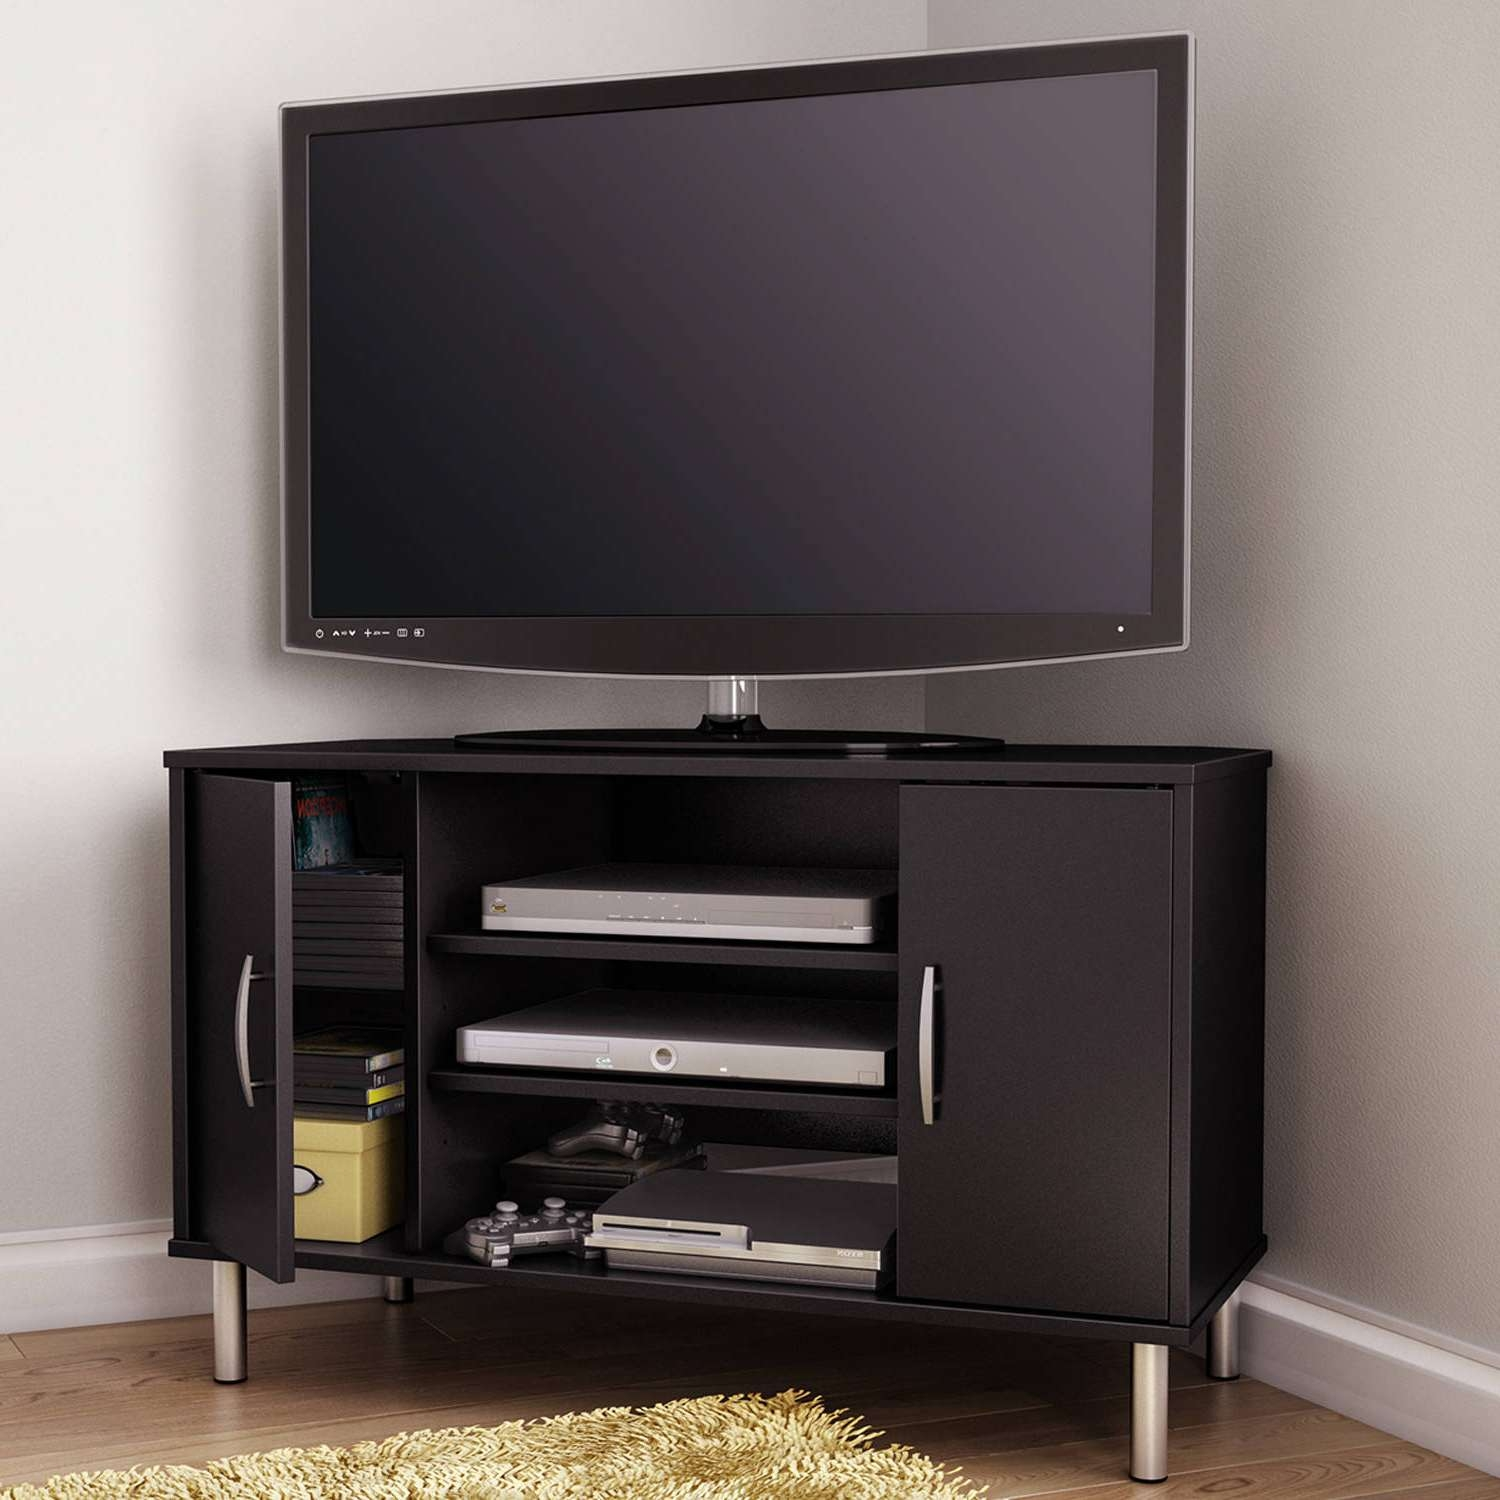 Tv : Tv Stands For Tube Tvs Intrigue Tv Stands For Tube Tvs 36 Intended For Tv Stands For Tube Tvs (View 2 of 15)